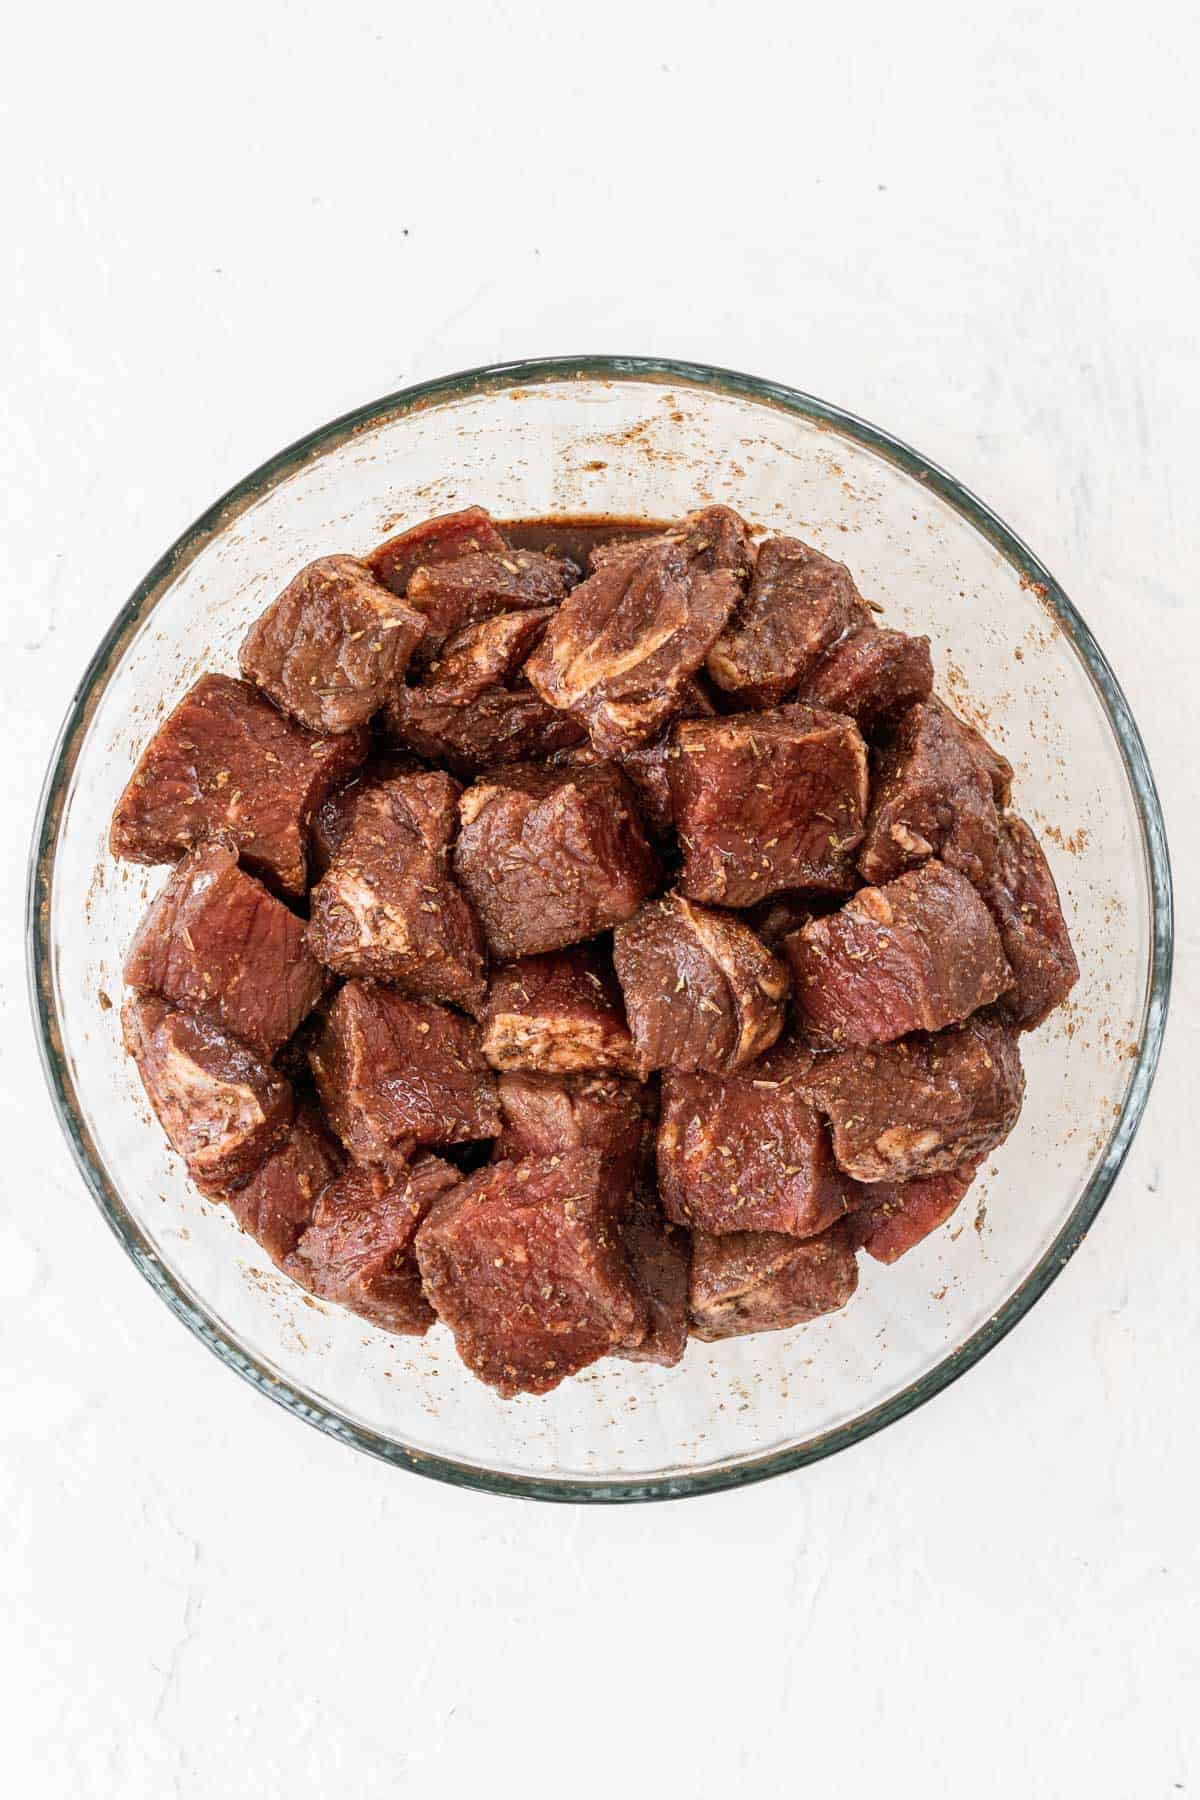 Cubed steak in a glass bowl topped with a balsamic marinade.